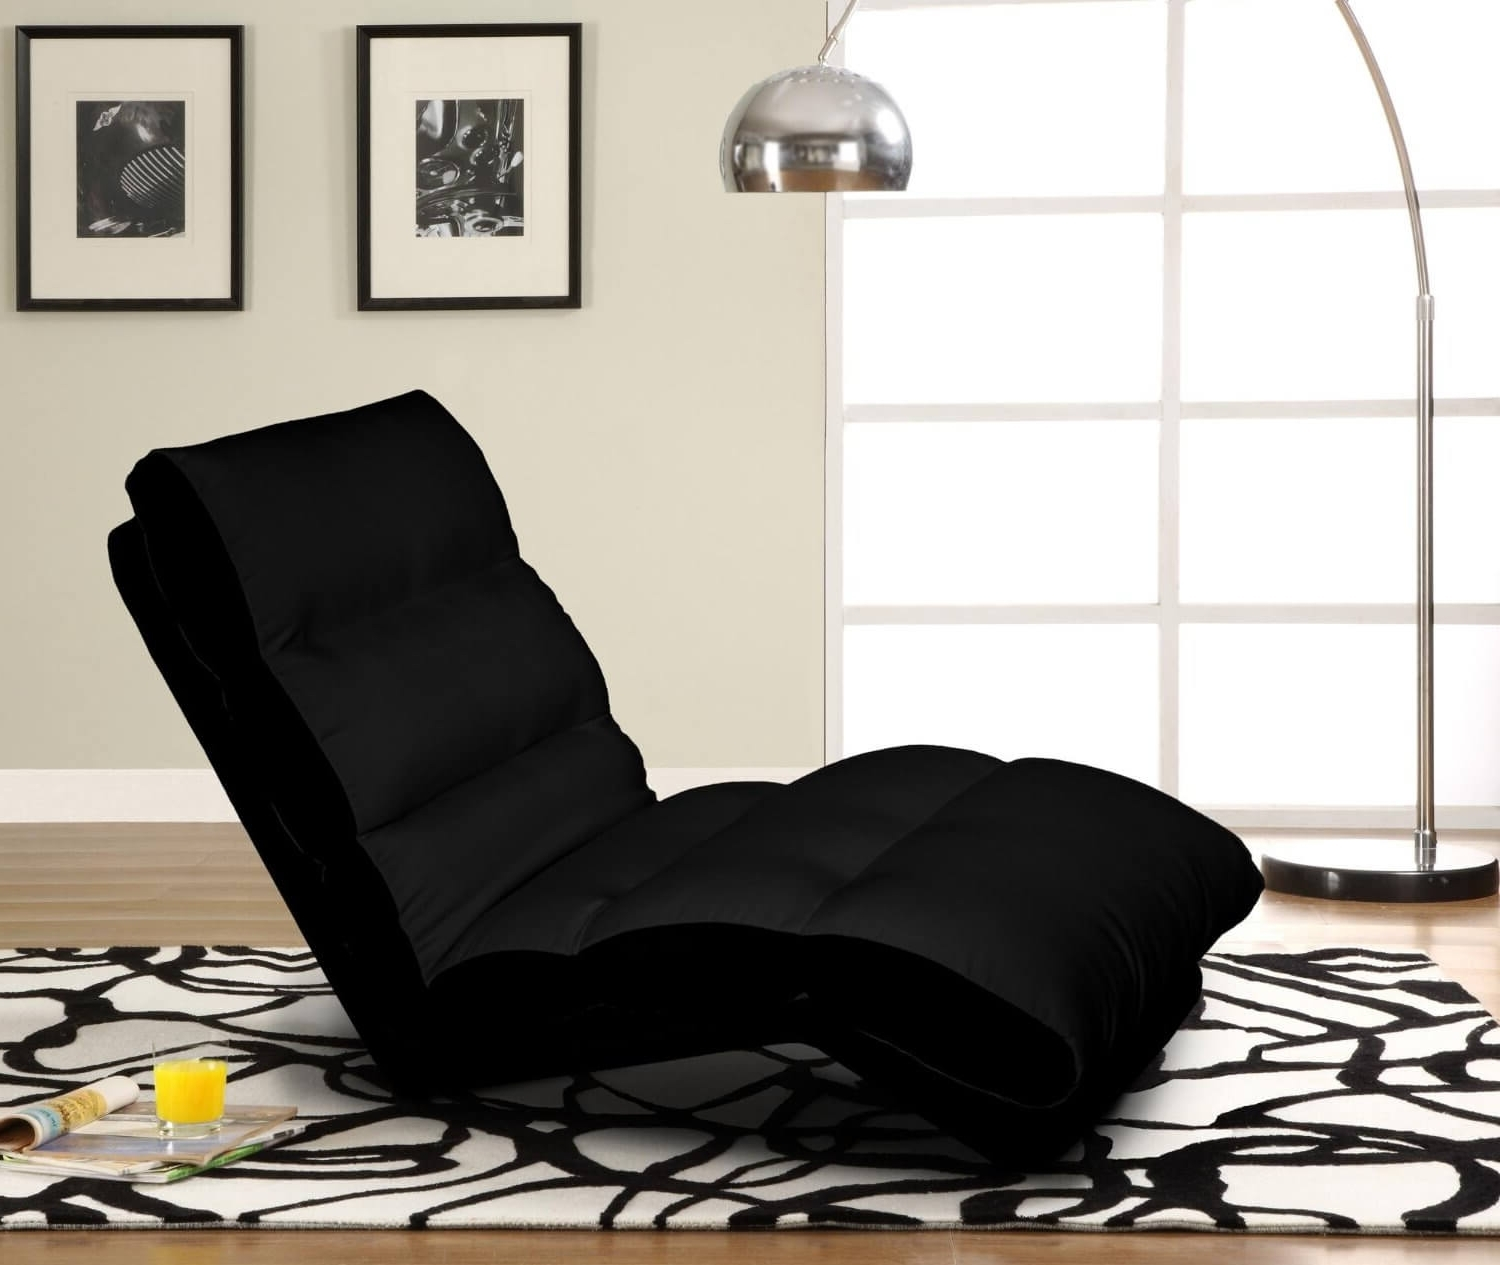 Convertible Chaises With Regard To Current Top 20 Types Of Black Chaise Lounges (Buying Guide) – (View 9 of 15)